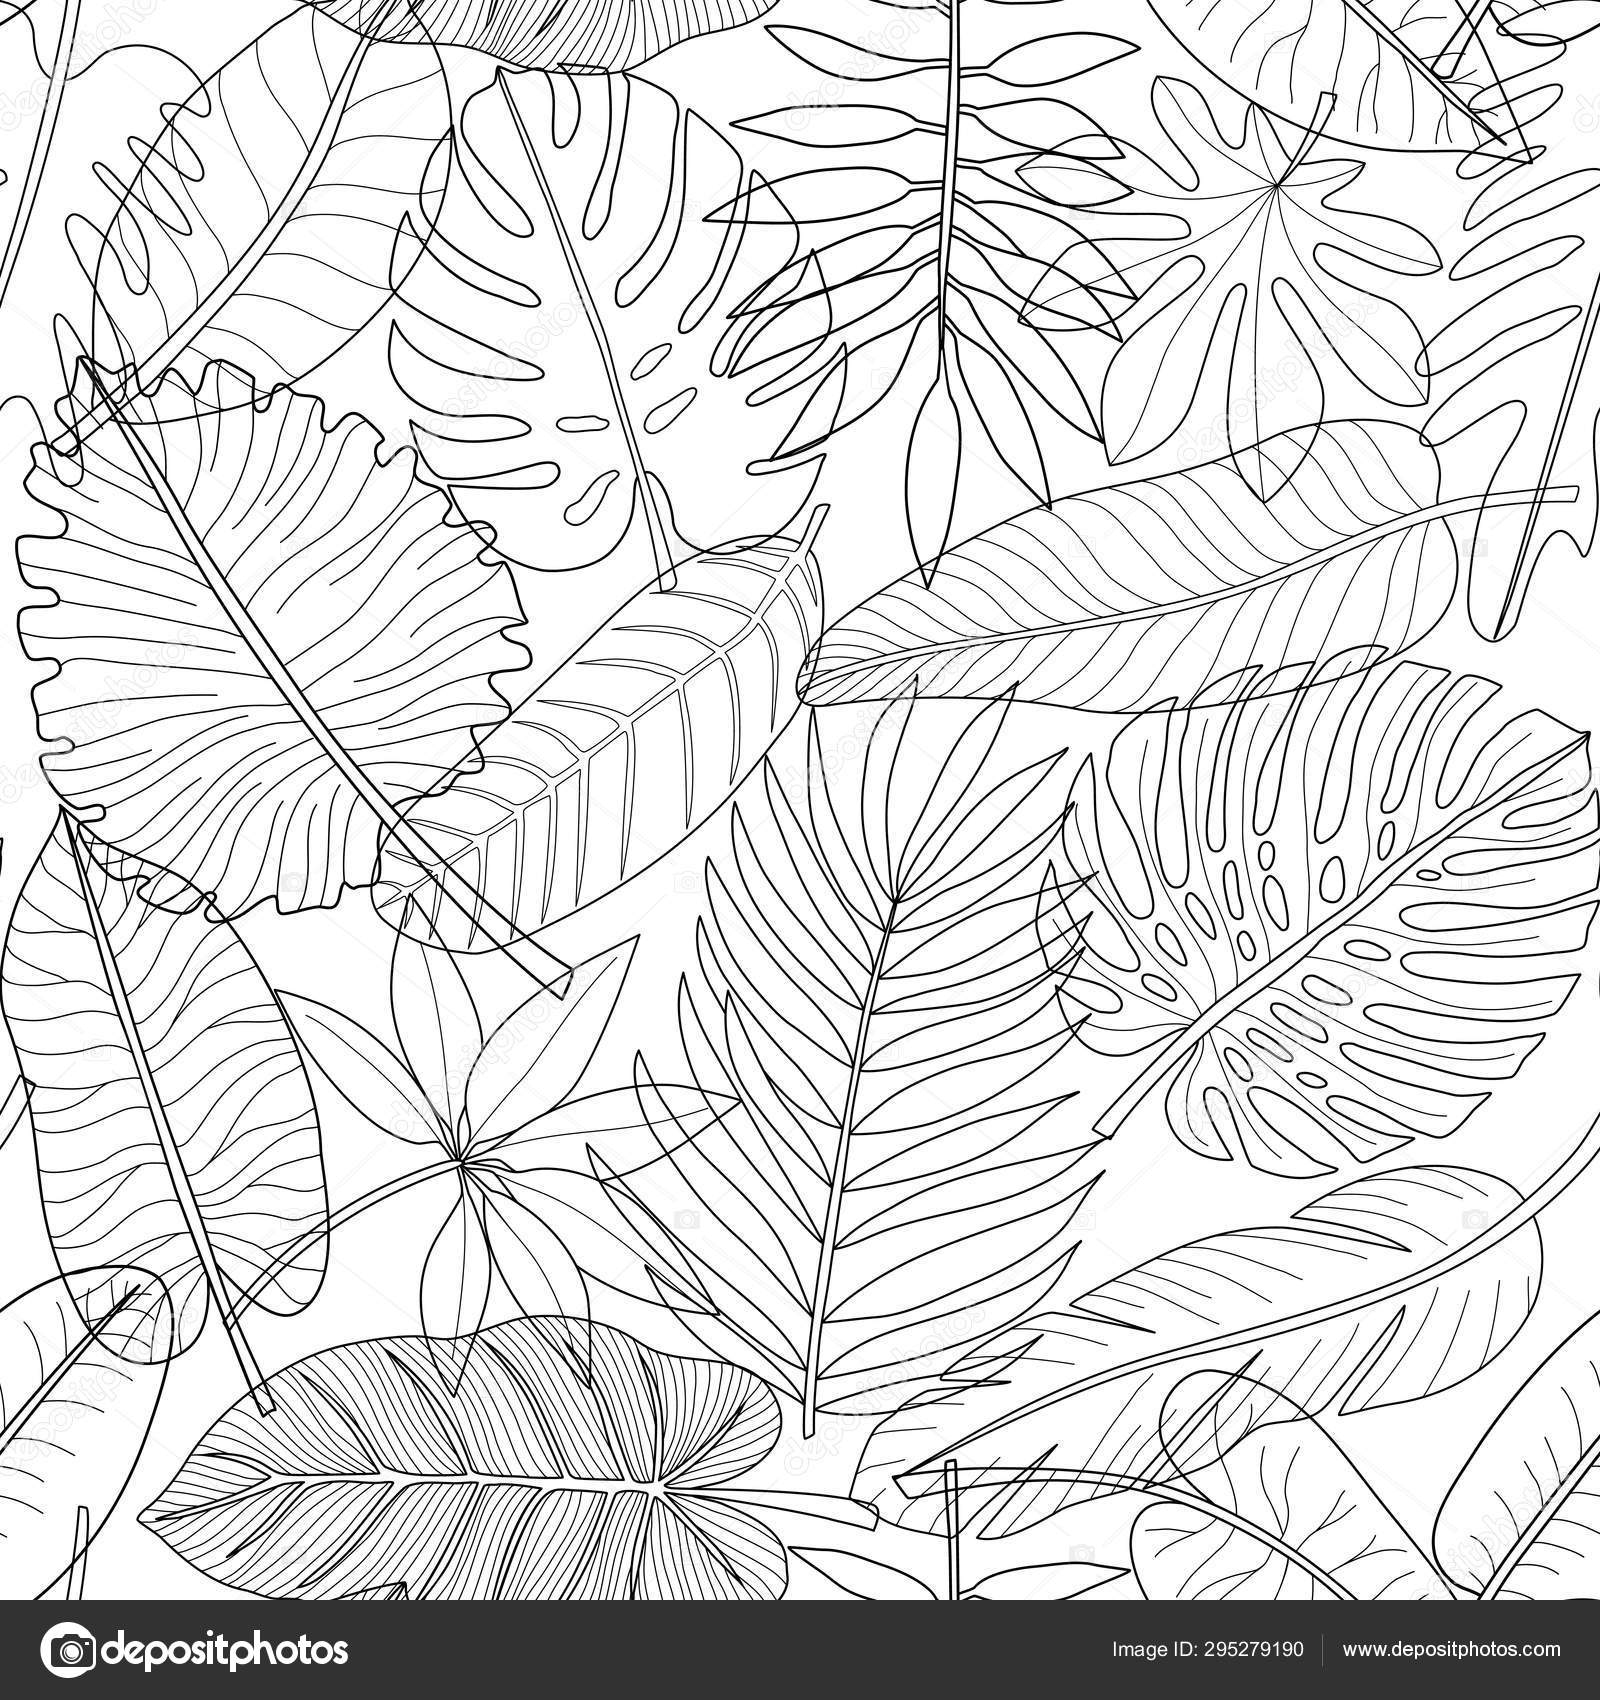 Leaves Of Tropical Plants Black And White Outline Seamless Pattern Stock Vector C Kronalux 295279190 Monstera tropical outline leaves and splashes big vector. leaves of tropical plants black and white outline seamless pattern stock vector c kronalux 295279190